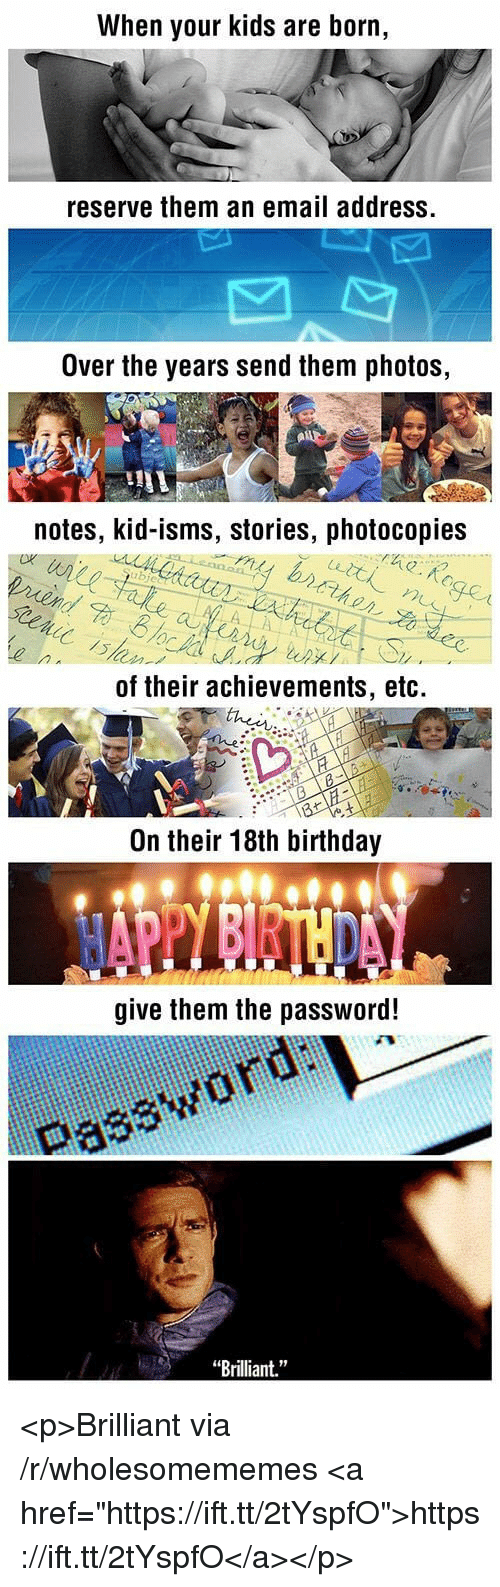 "Birthday, Email, and Kids: When your kids are born,  reserve them an email address.  Over the years send them photos,  notes, kid-isms, stories, photocopies  of their achievements, etc.  On their 18th birthday  give them the password!  Password uai  Brilliant."" <p>Brilliant via /r/wholesomememes <a href=""https://ift.tt/2tYspfO"">https://ift.tt/2tYspfO</a></p>"